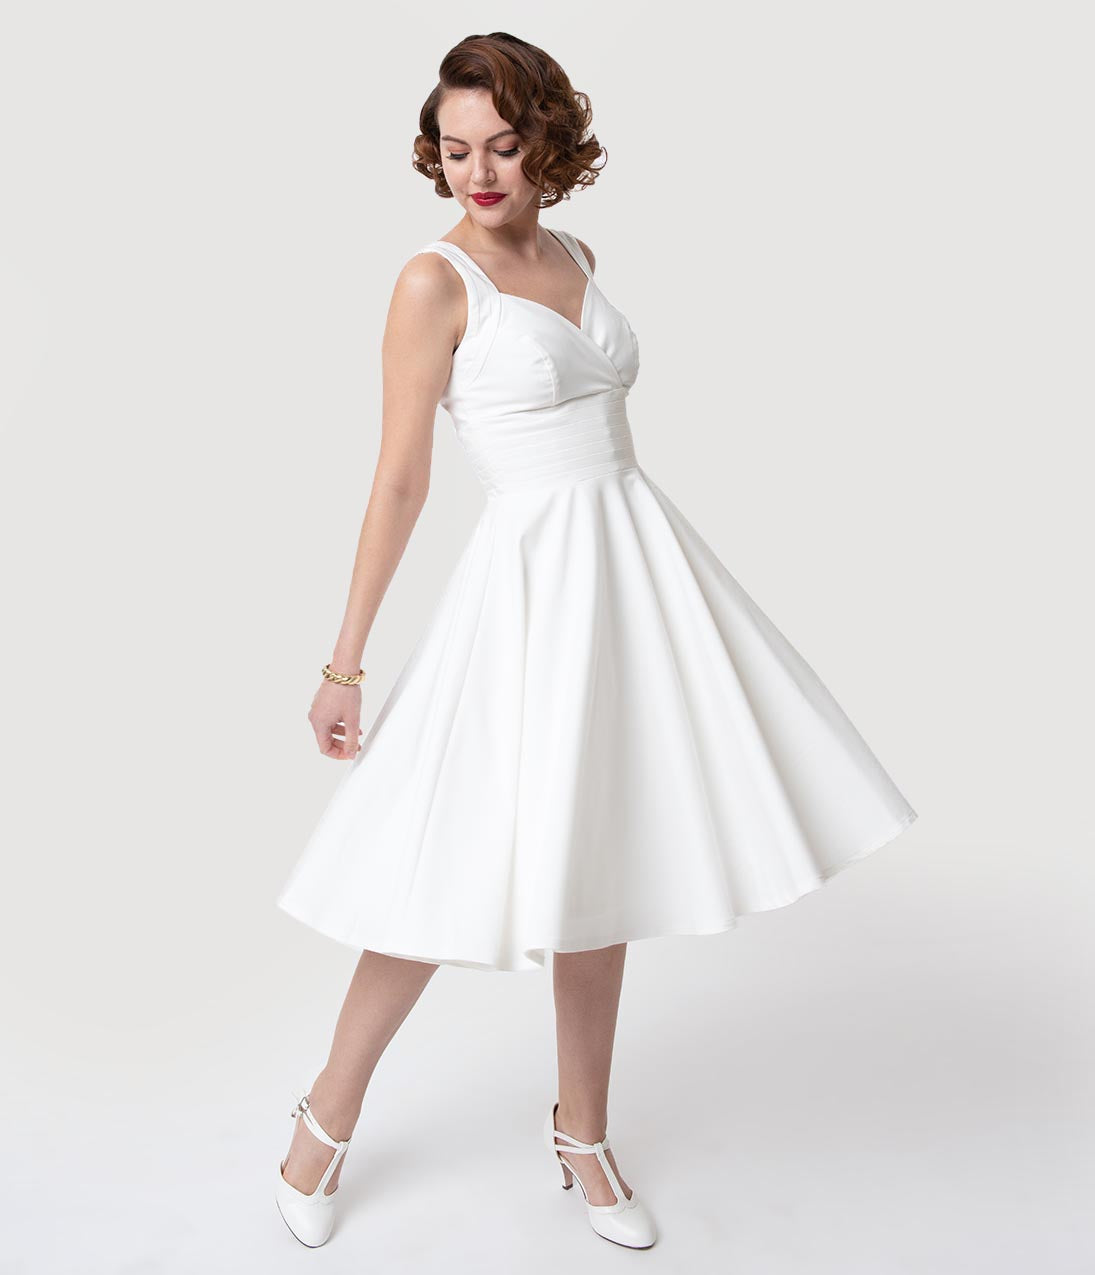 1950s Swing Dresses | 50s Swing Dress Glamour Bunny 1950S White Sweetheart Trinity Swing Dress $116.00 AT vintagedancer.com